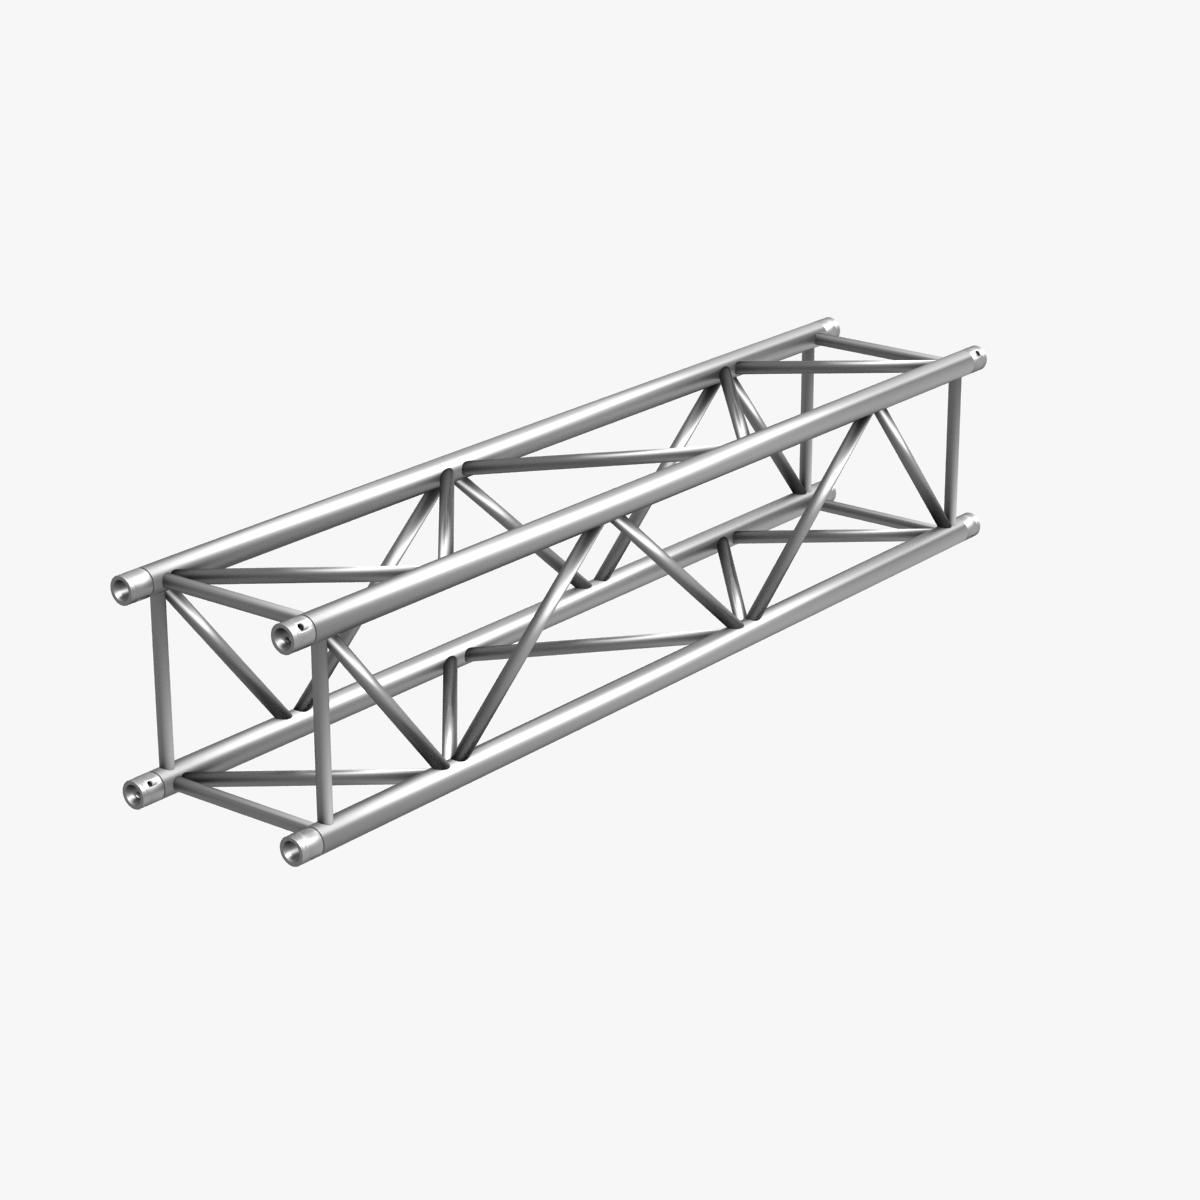 big square truss (collection 10 modular pieces) 3d model 3ds dxf fbx c4d dae  268550